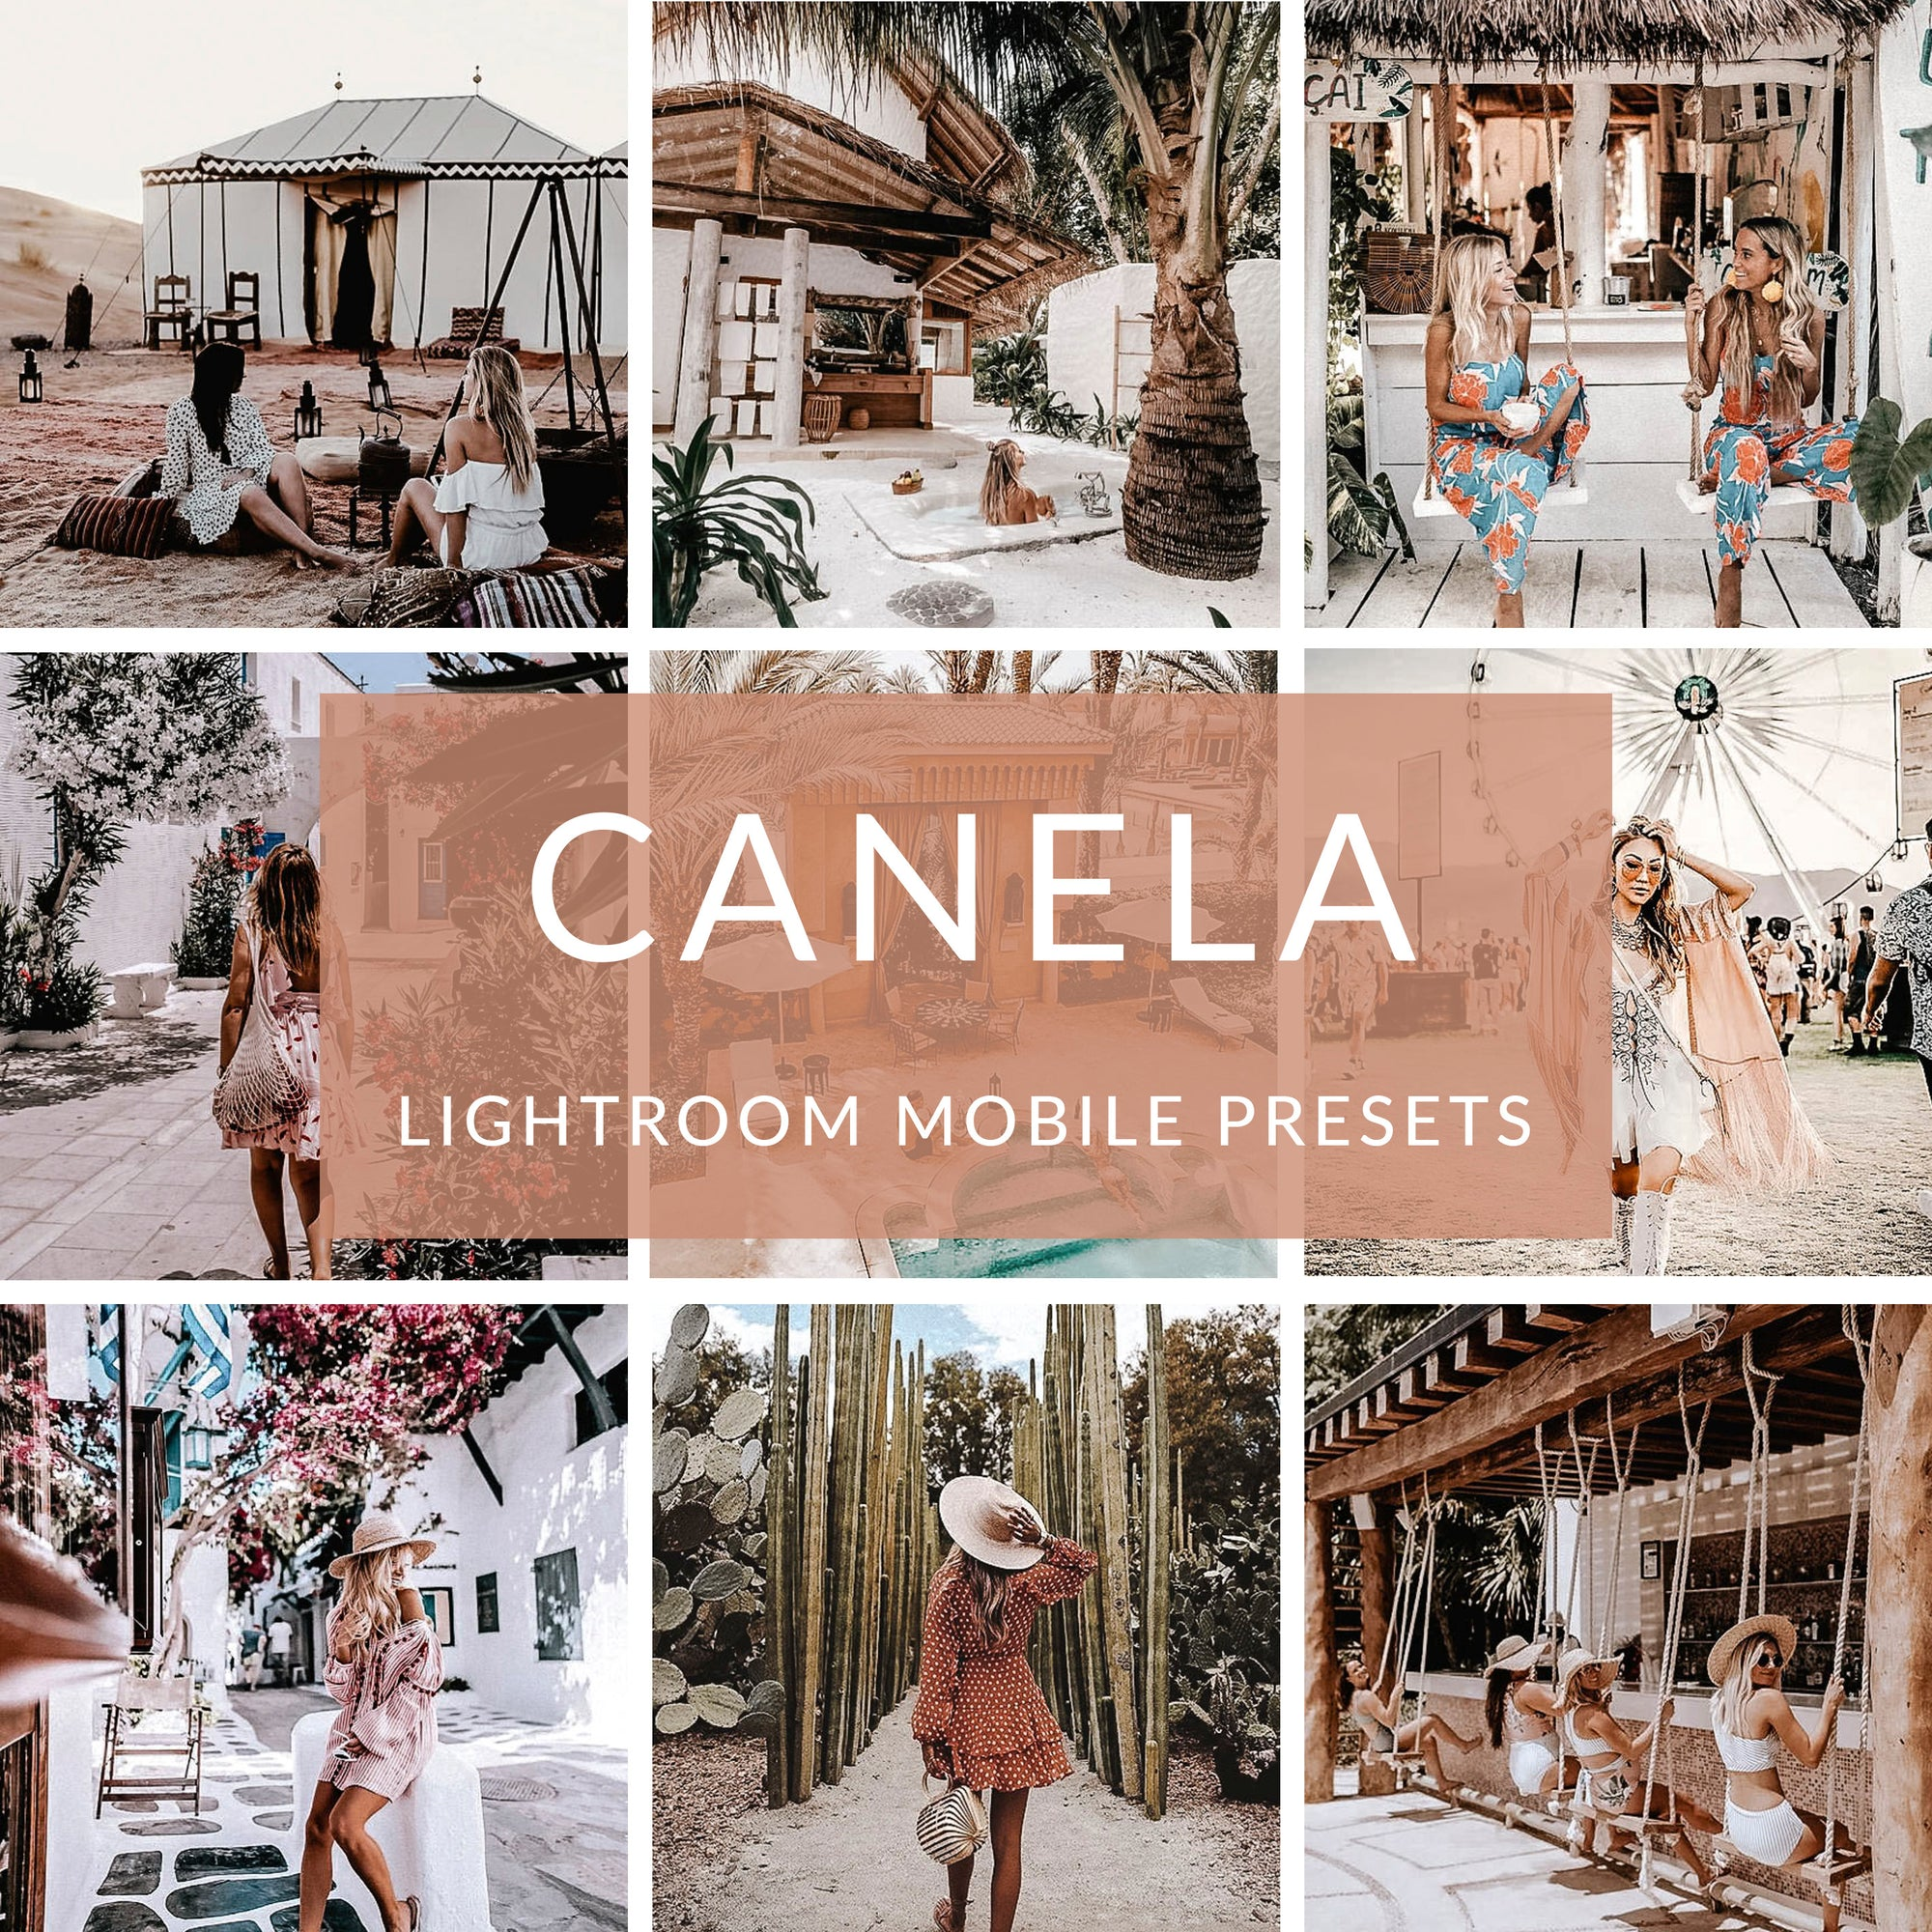 Canela Lightroom Mobile Presets